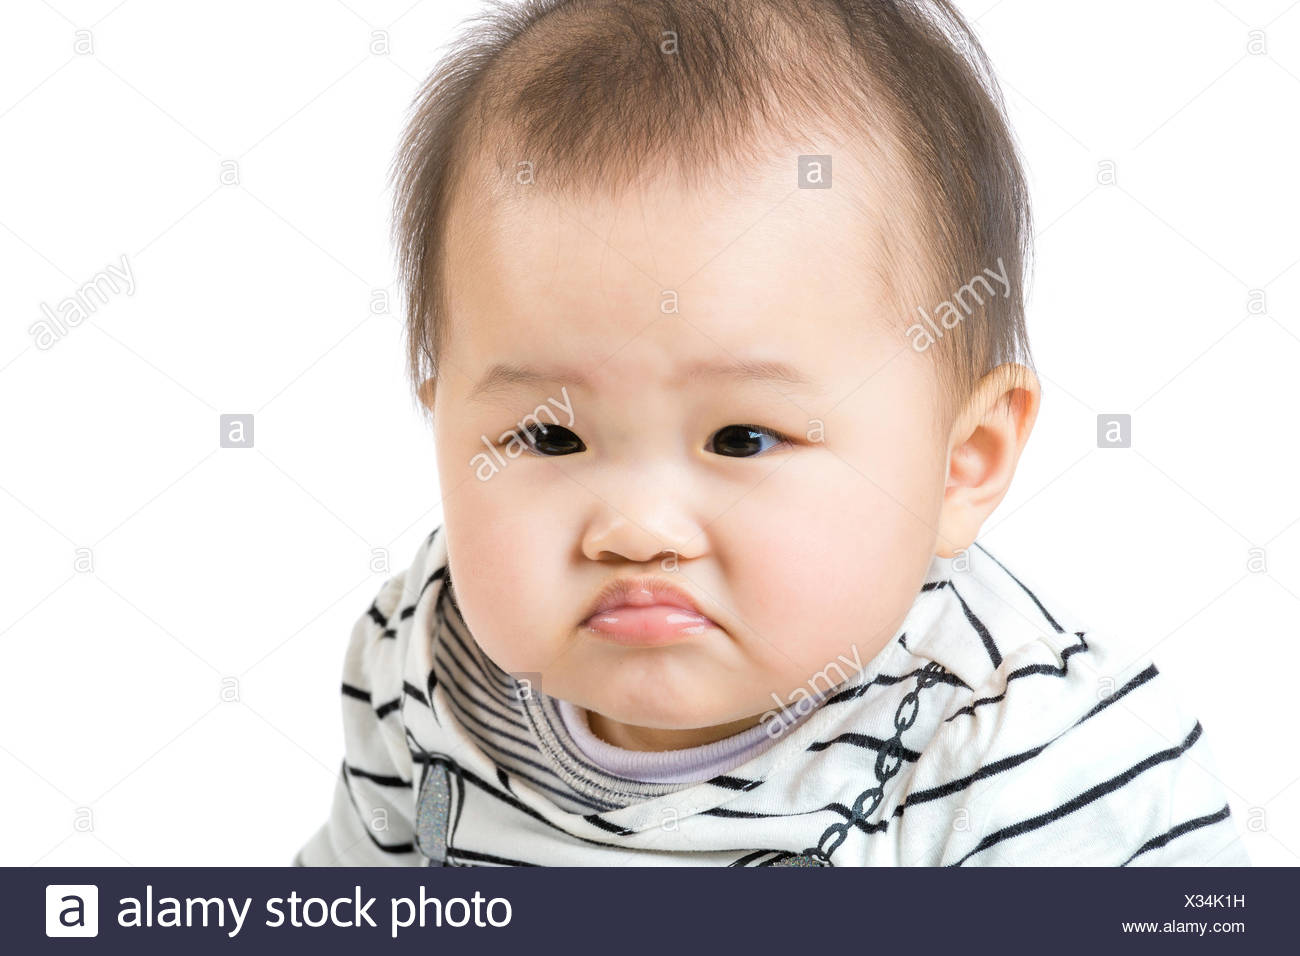 2bf49f29bd1 Baby Pout Sad Stock Photos   Baby Pout Sad Stock Images - Alamy